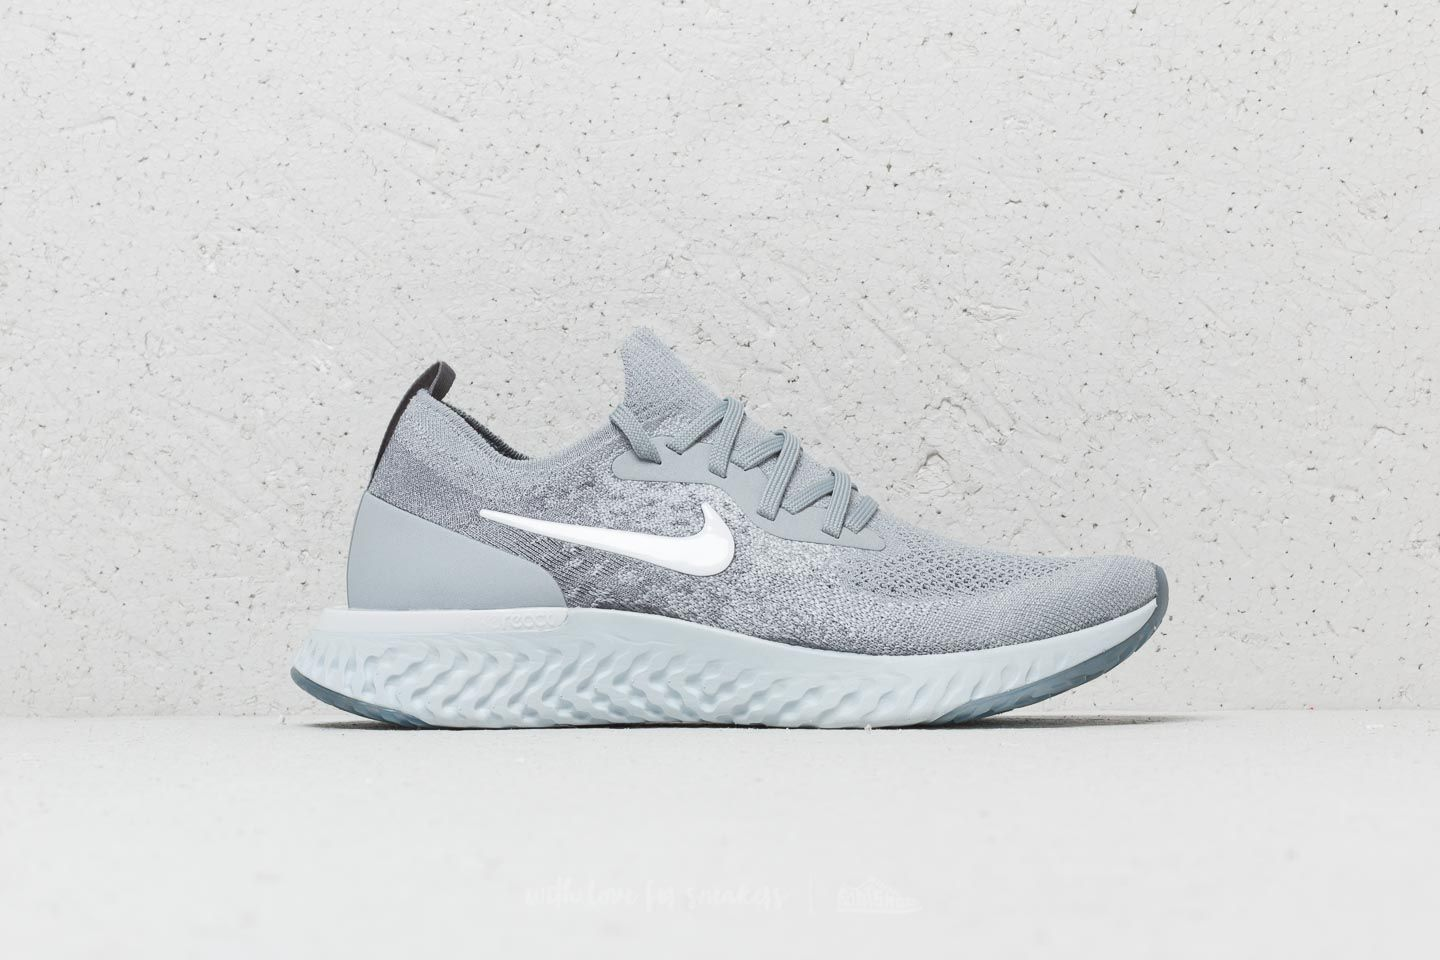 7d5524342d376 Nike Epic React Flyknit (GS) Wolf Grey  White-Cool Grey at a